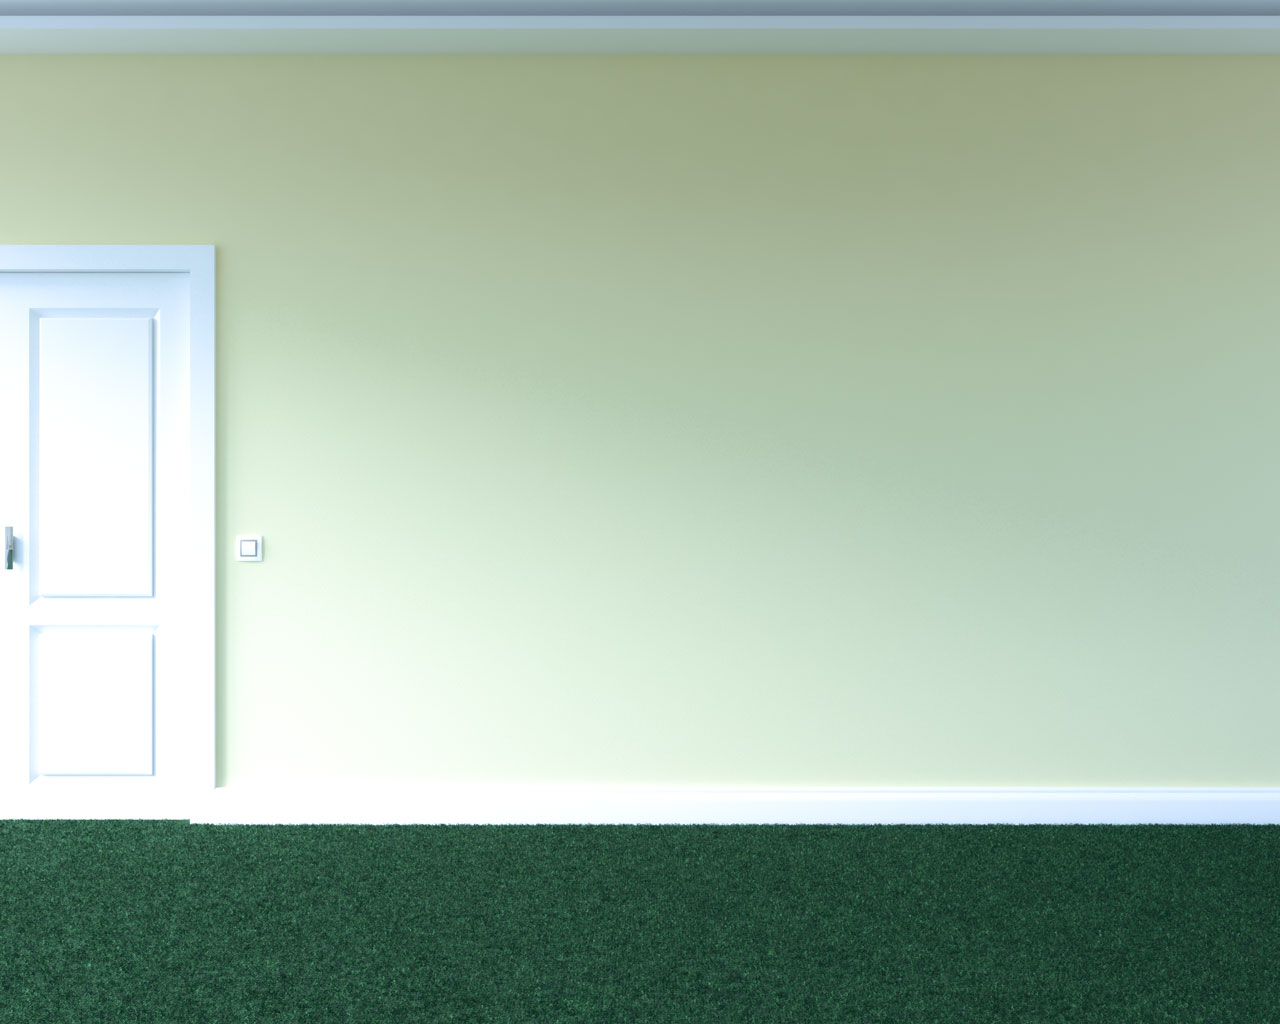 Green carpet with light yellow wall